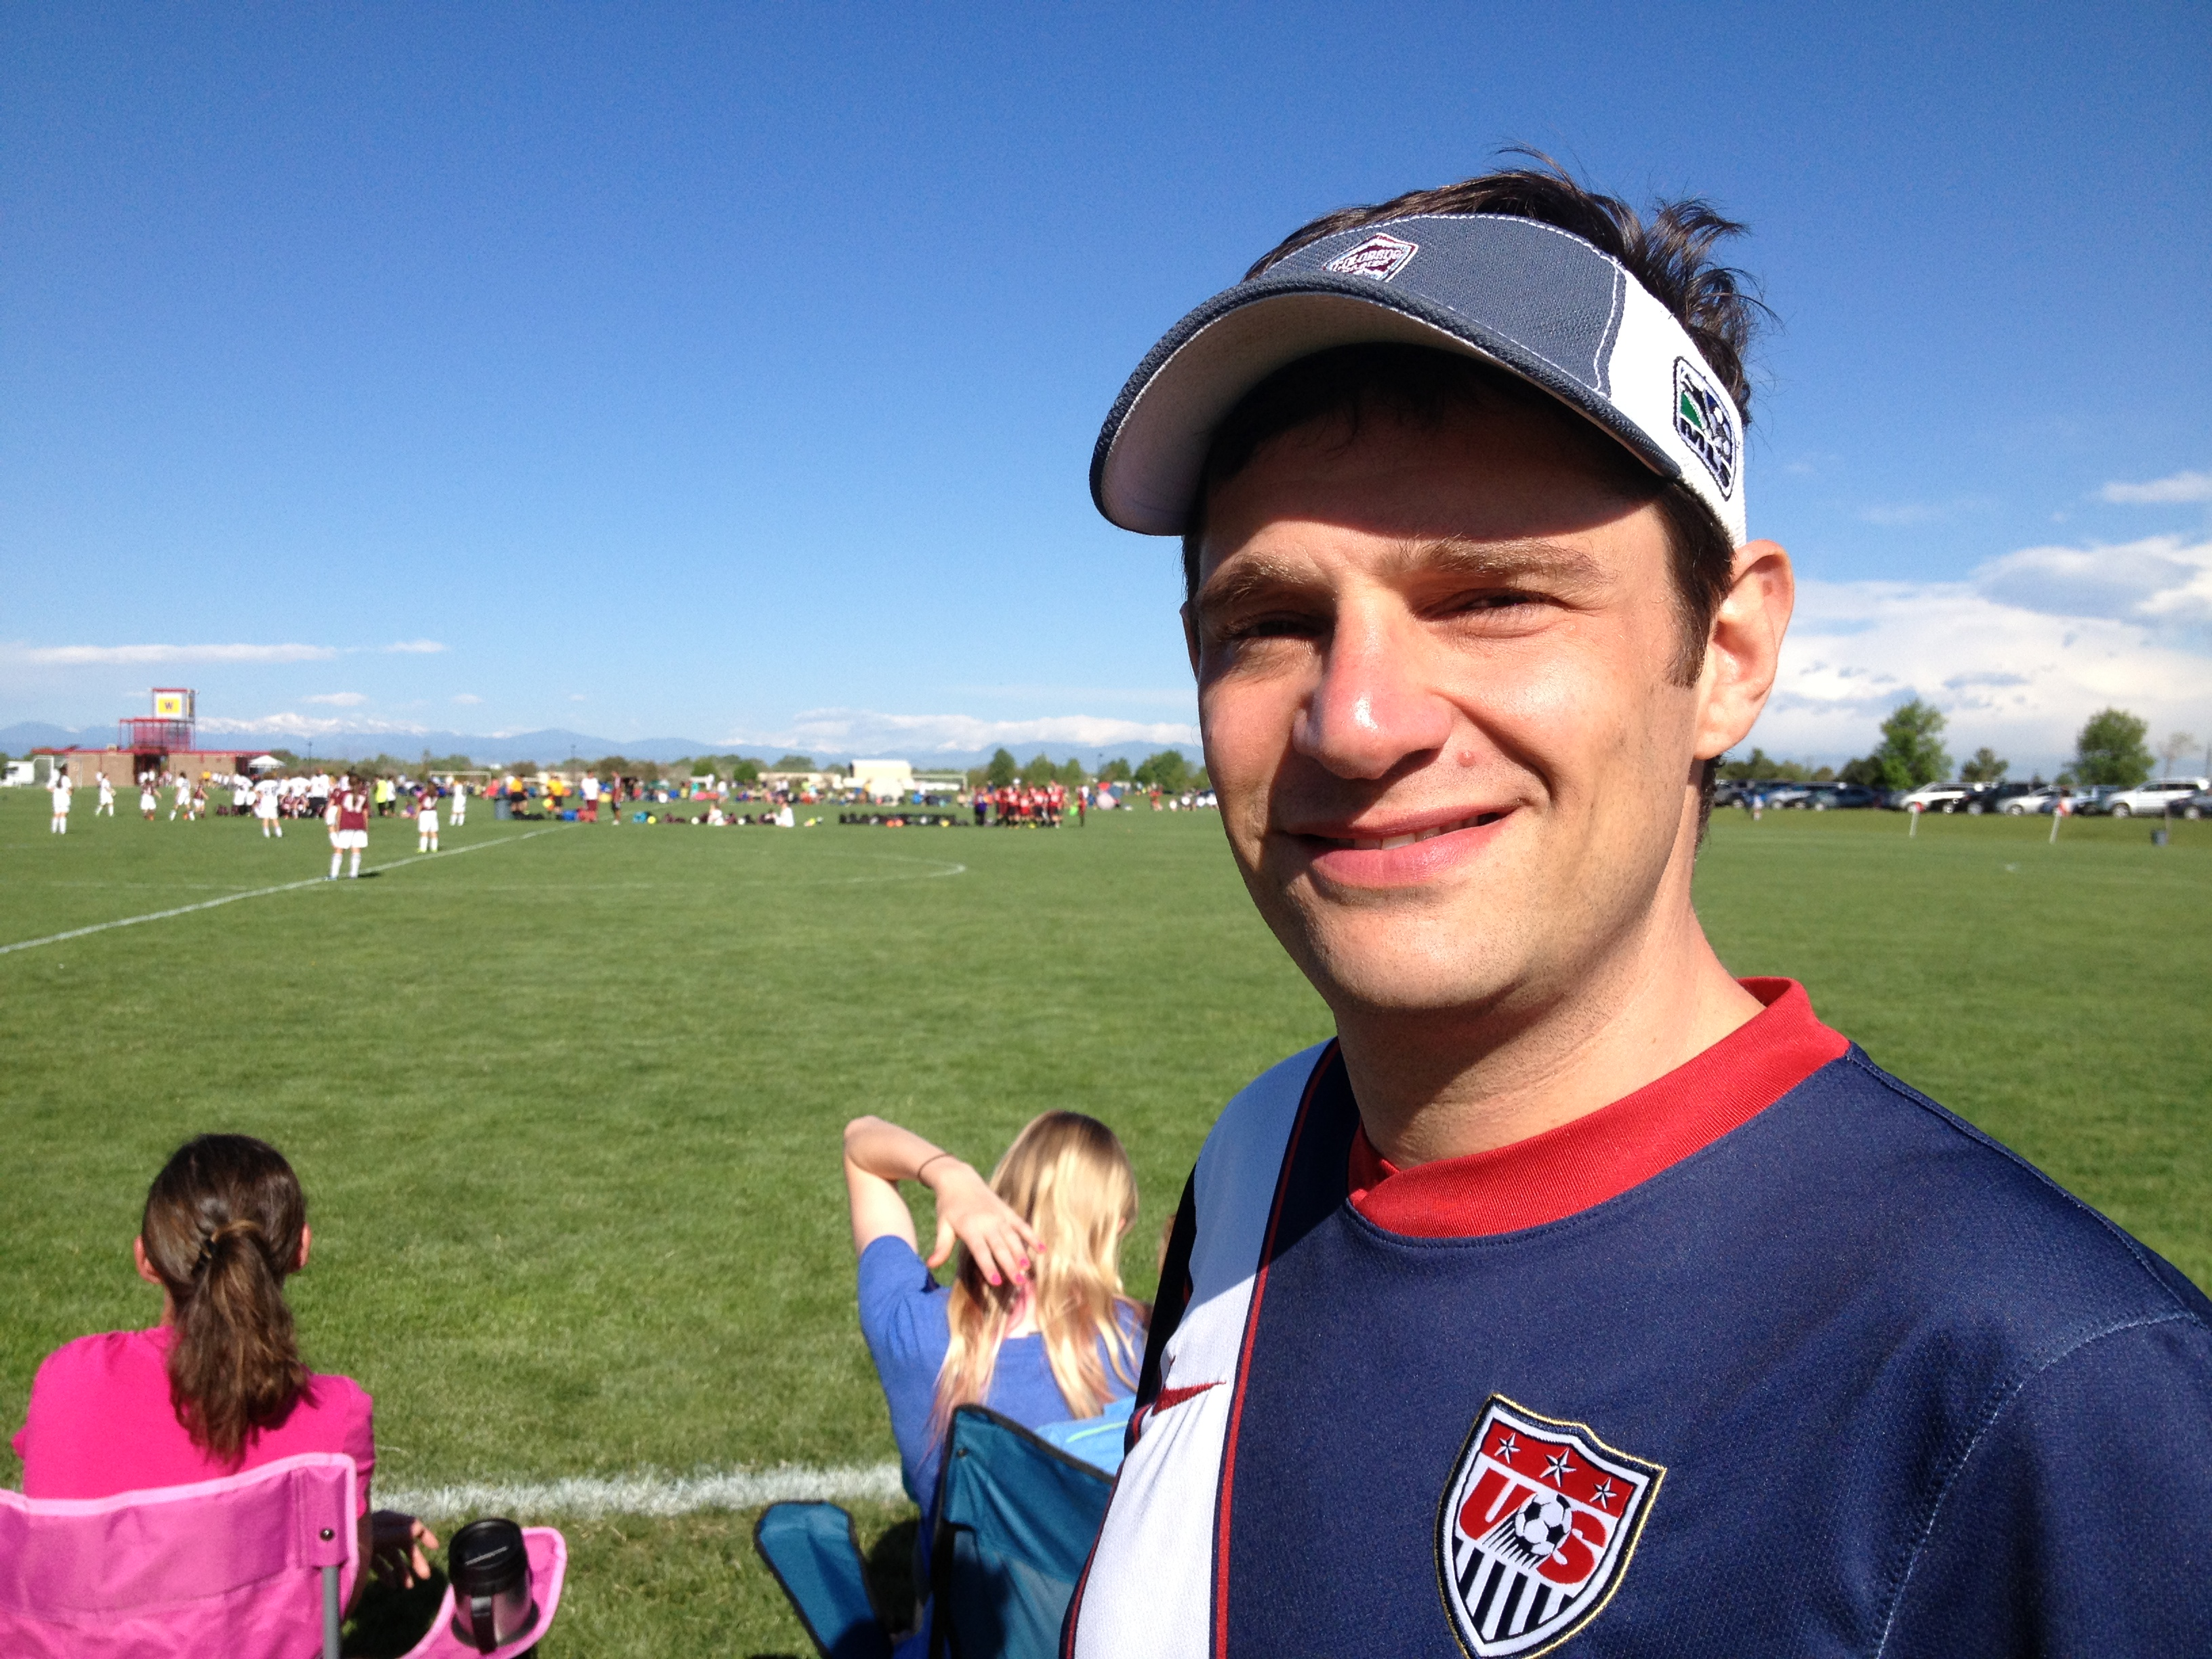 Soccer dad headed to Brazil for World Cup